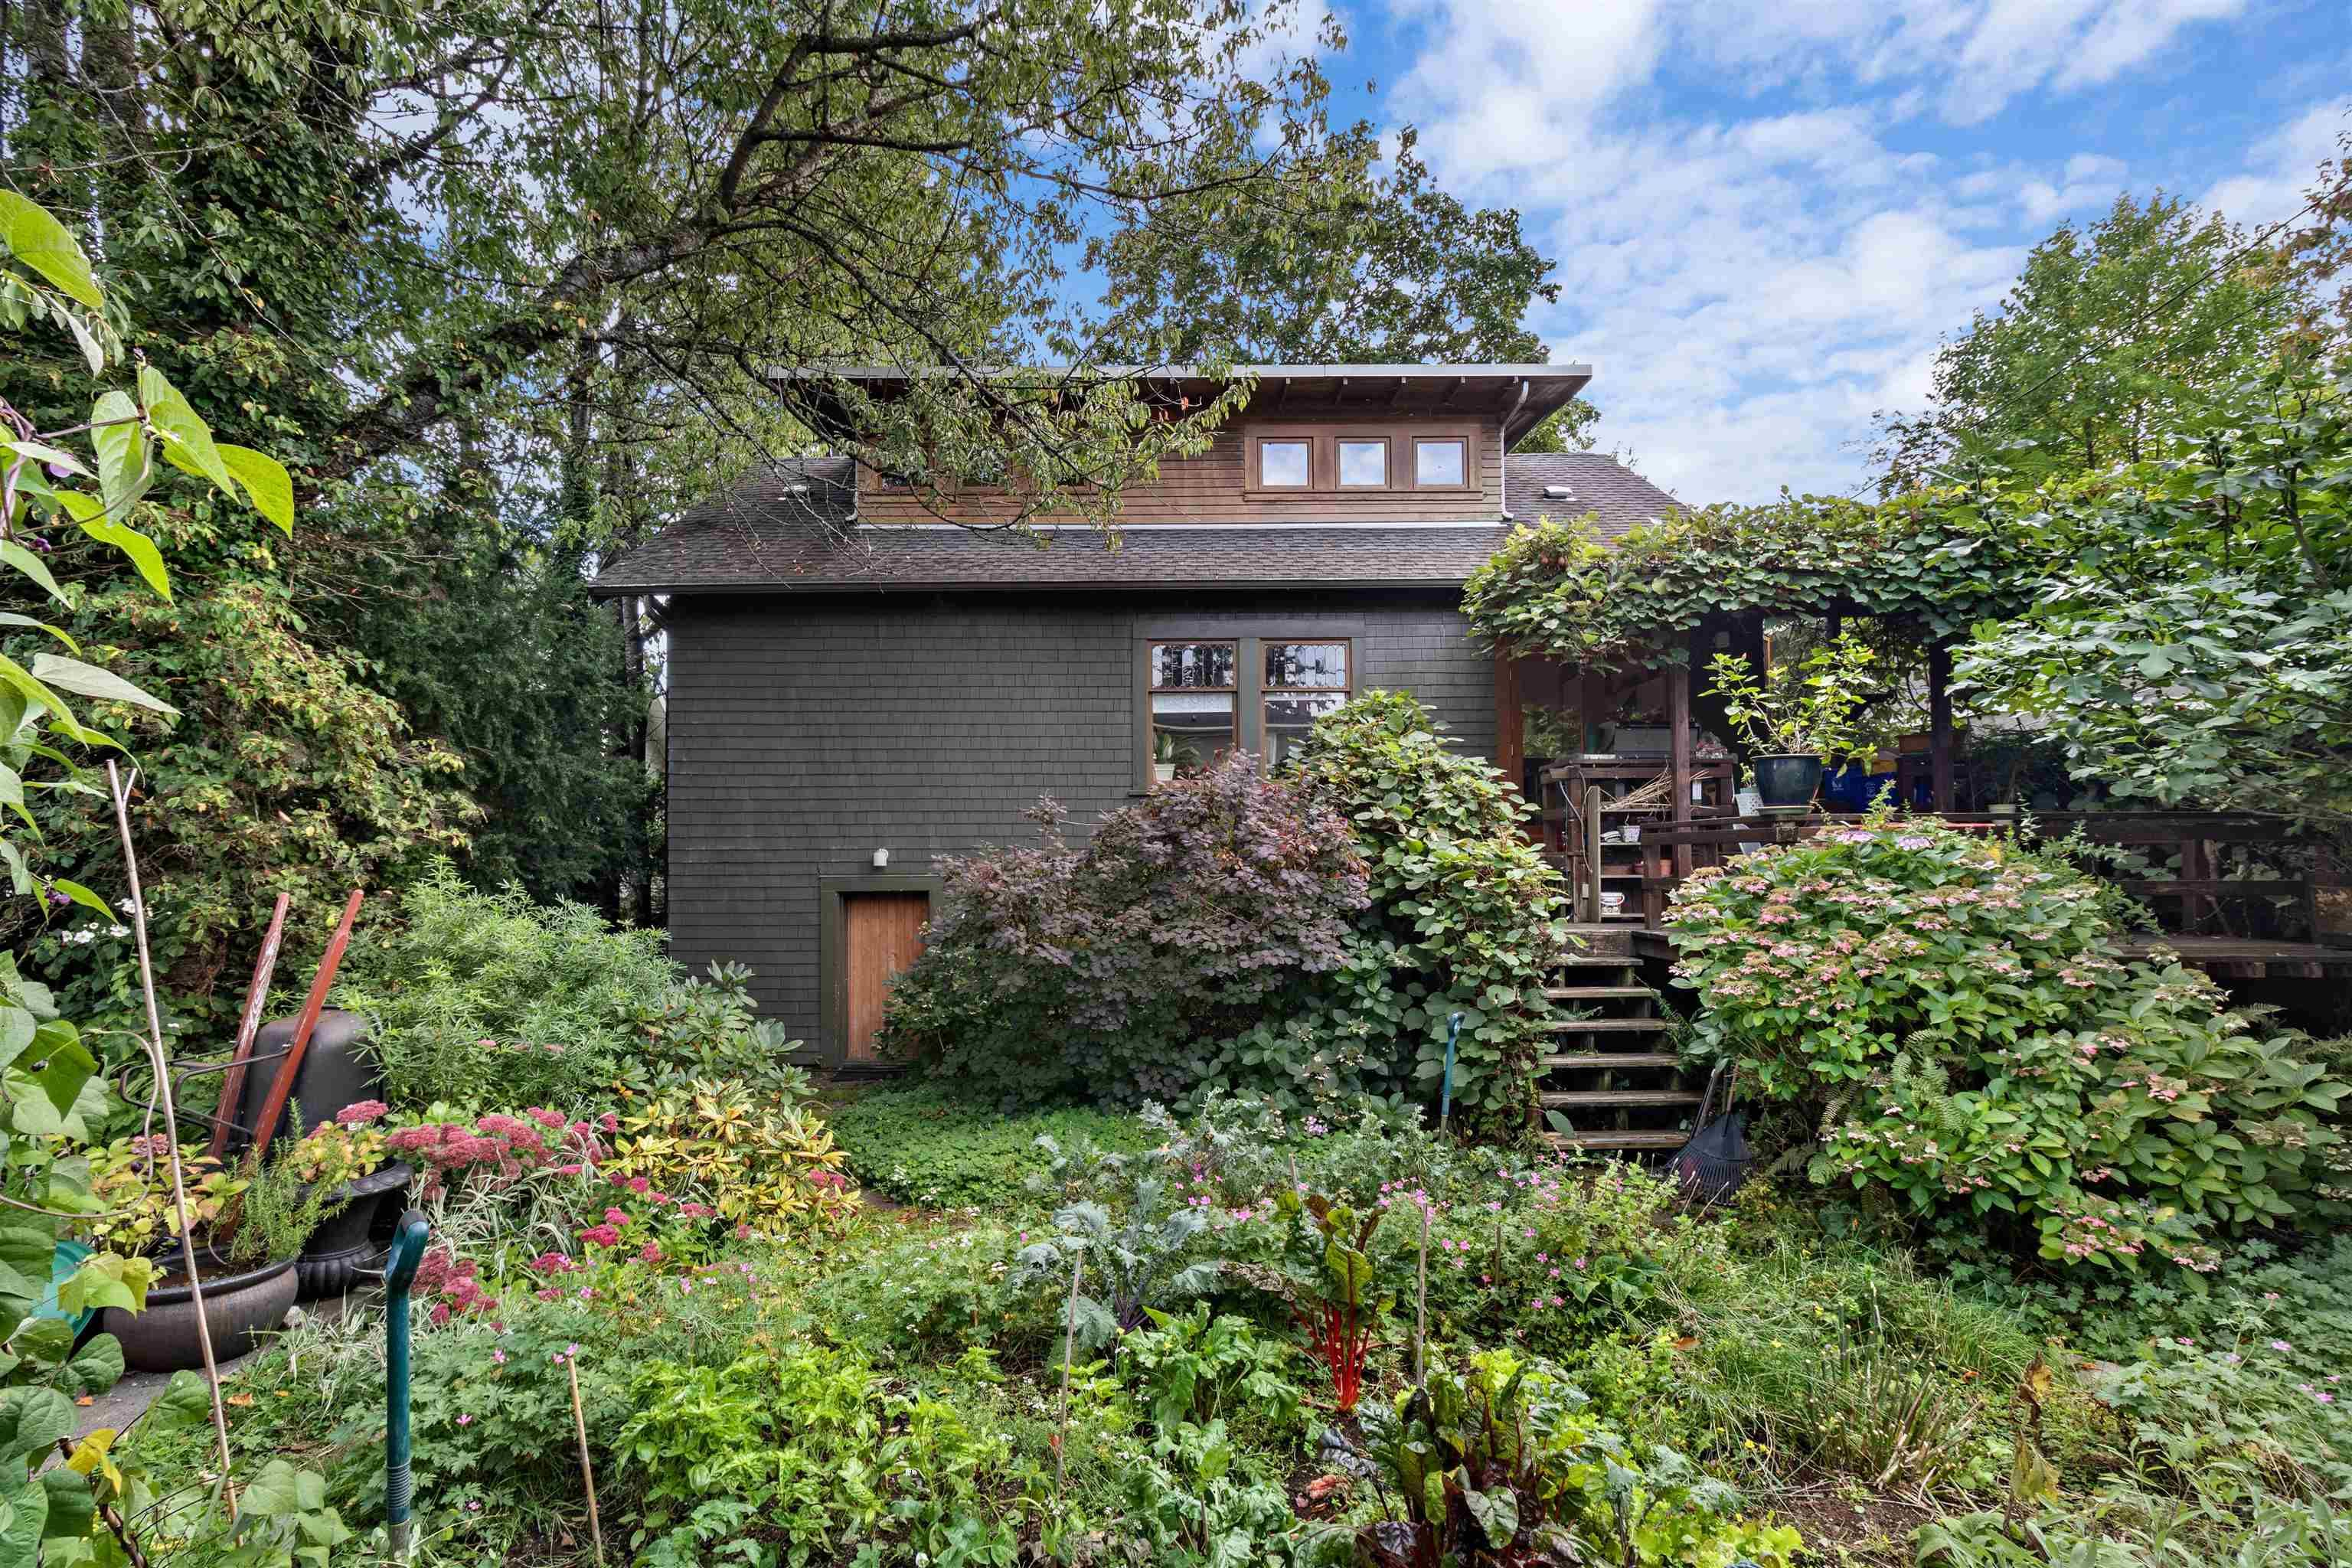 Main Photo: 3463 W 38TH Avenue in Vancouver: Dunbar House for sale (Vancouver West)  : MLS®# R2621549